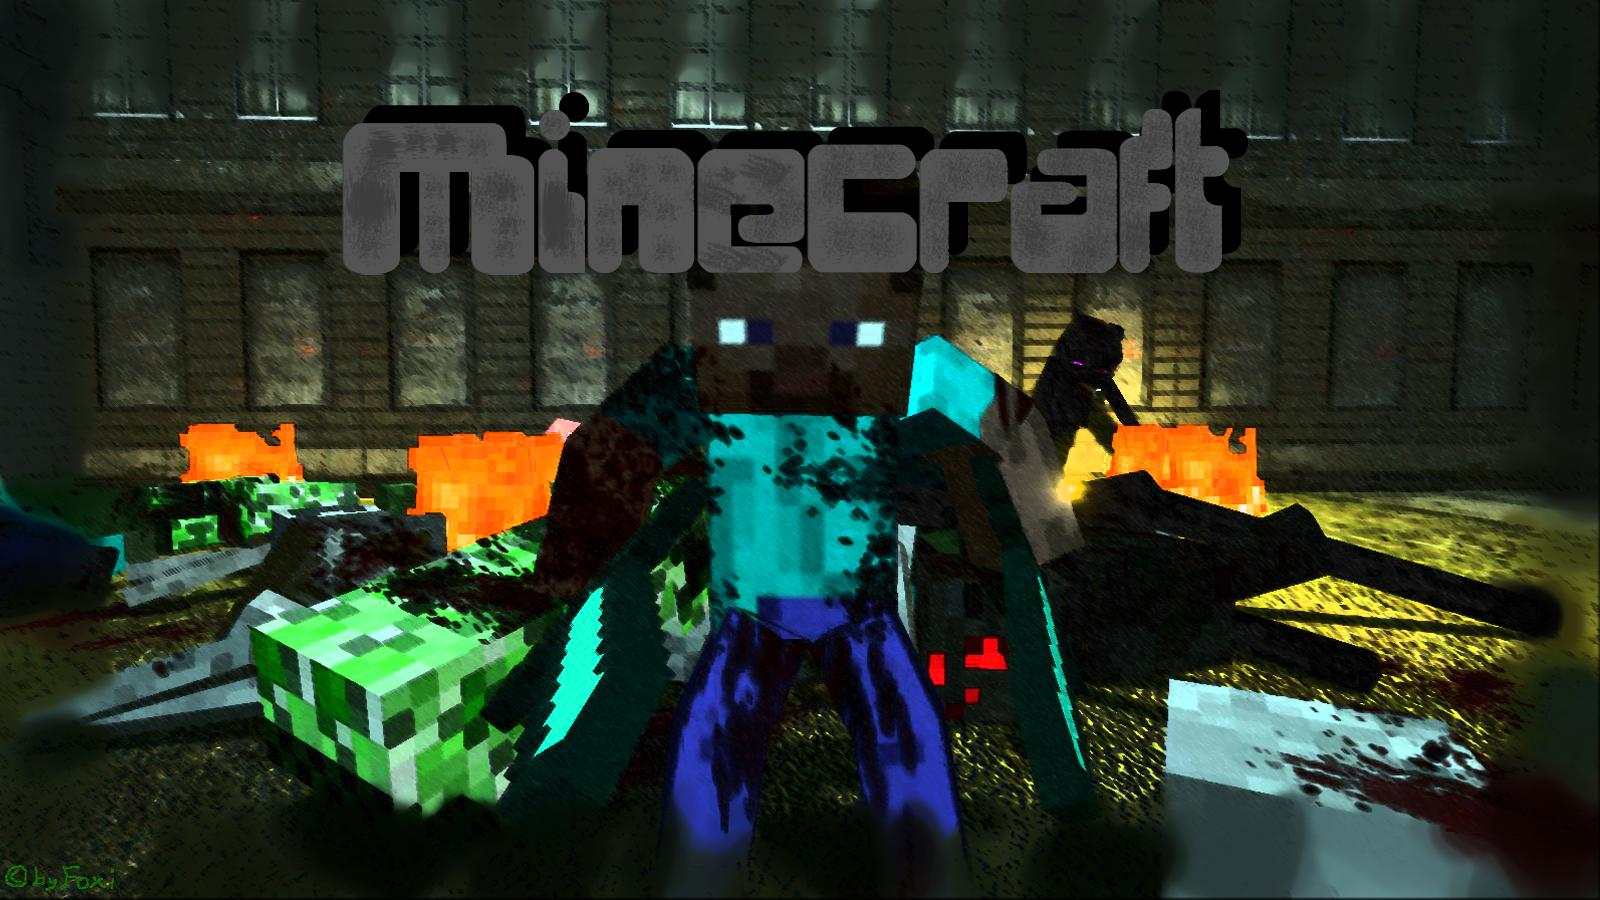 Awesome Minecraft Desktop Backgrounds Images Pictures   Becuo 1600x900